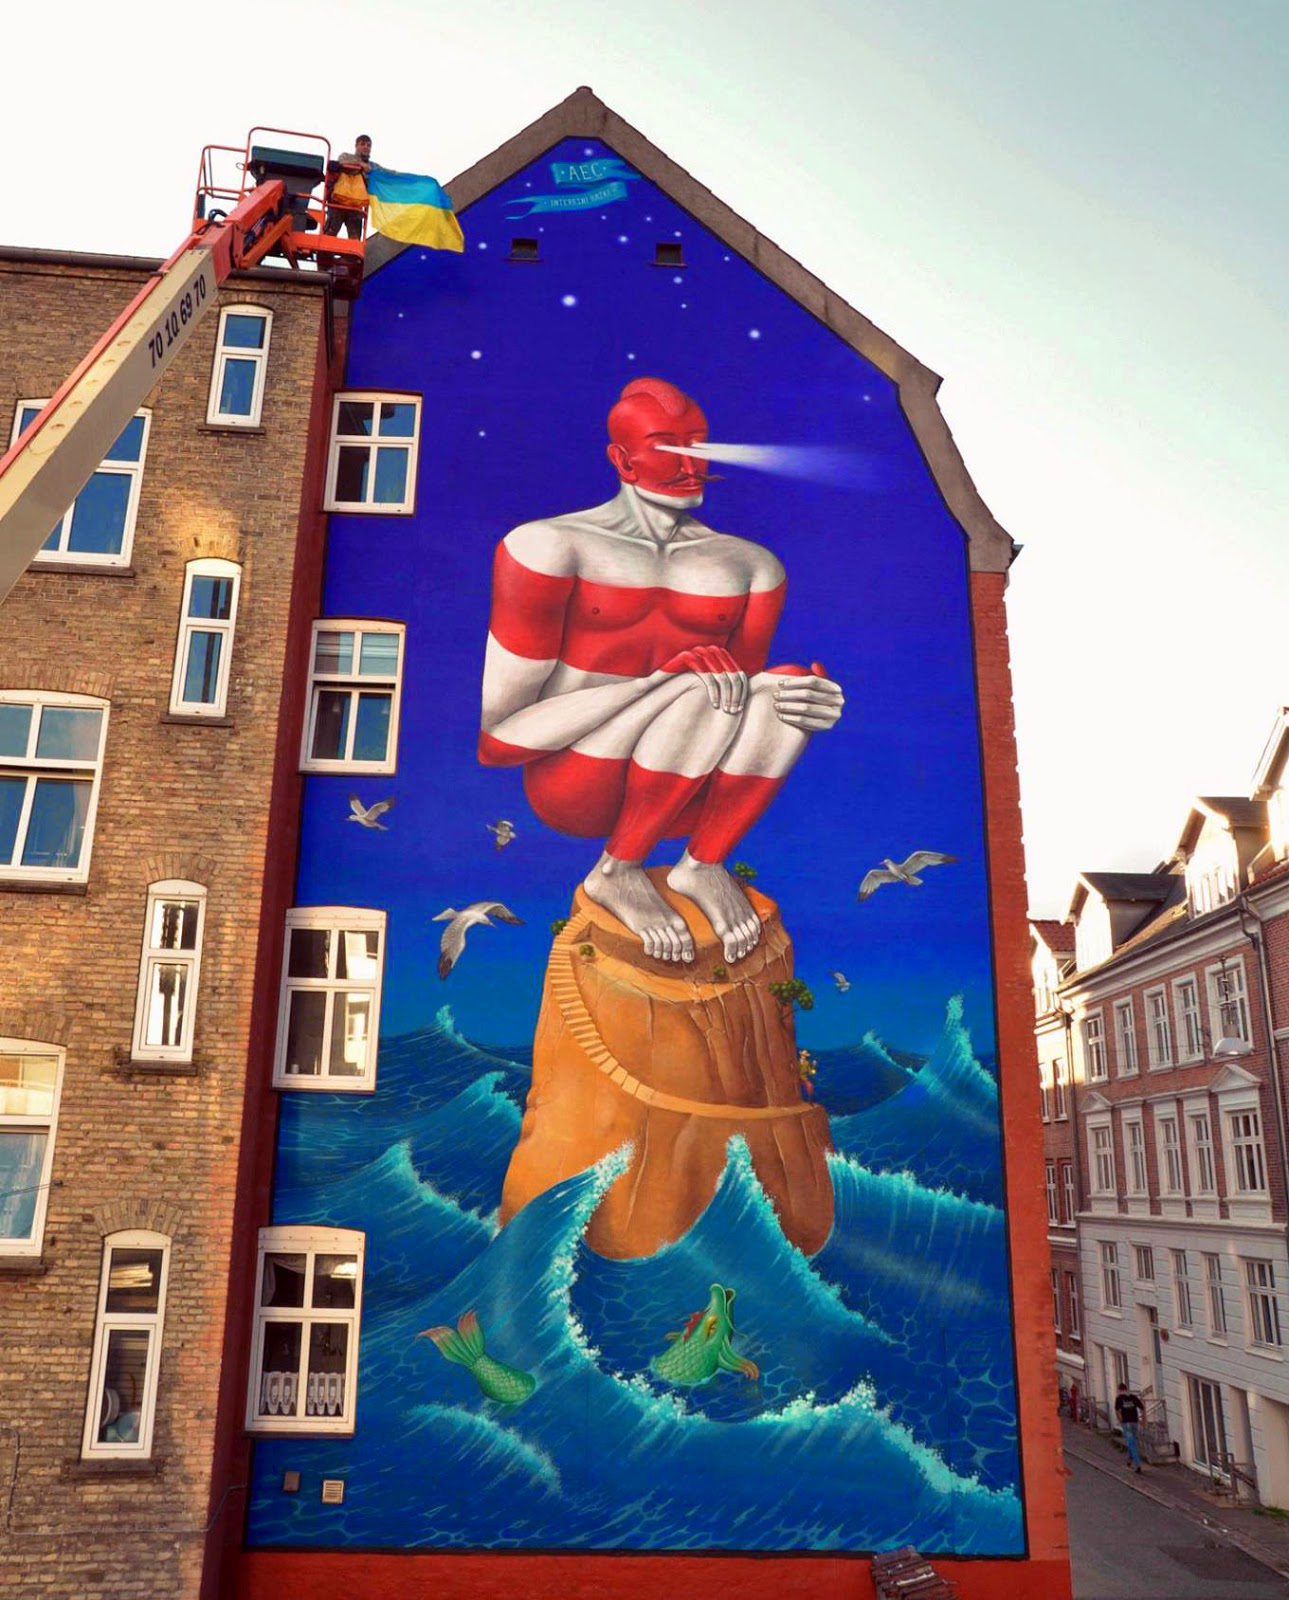 Interesni Kazki are currently spending a few days in Denmark where they were invited to paint for the first edition of the excellent We Aart Festival.